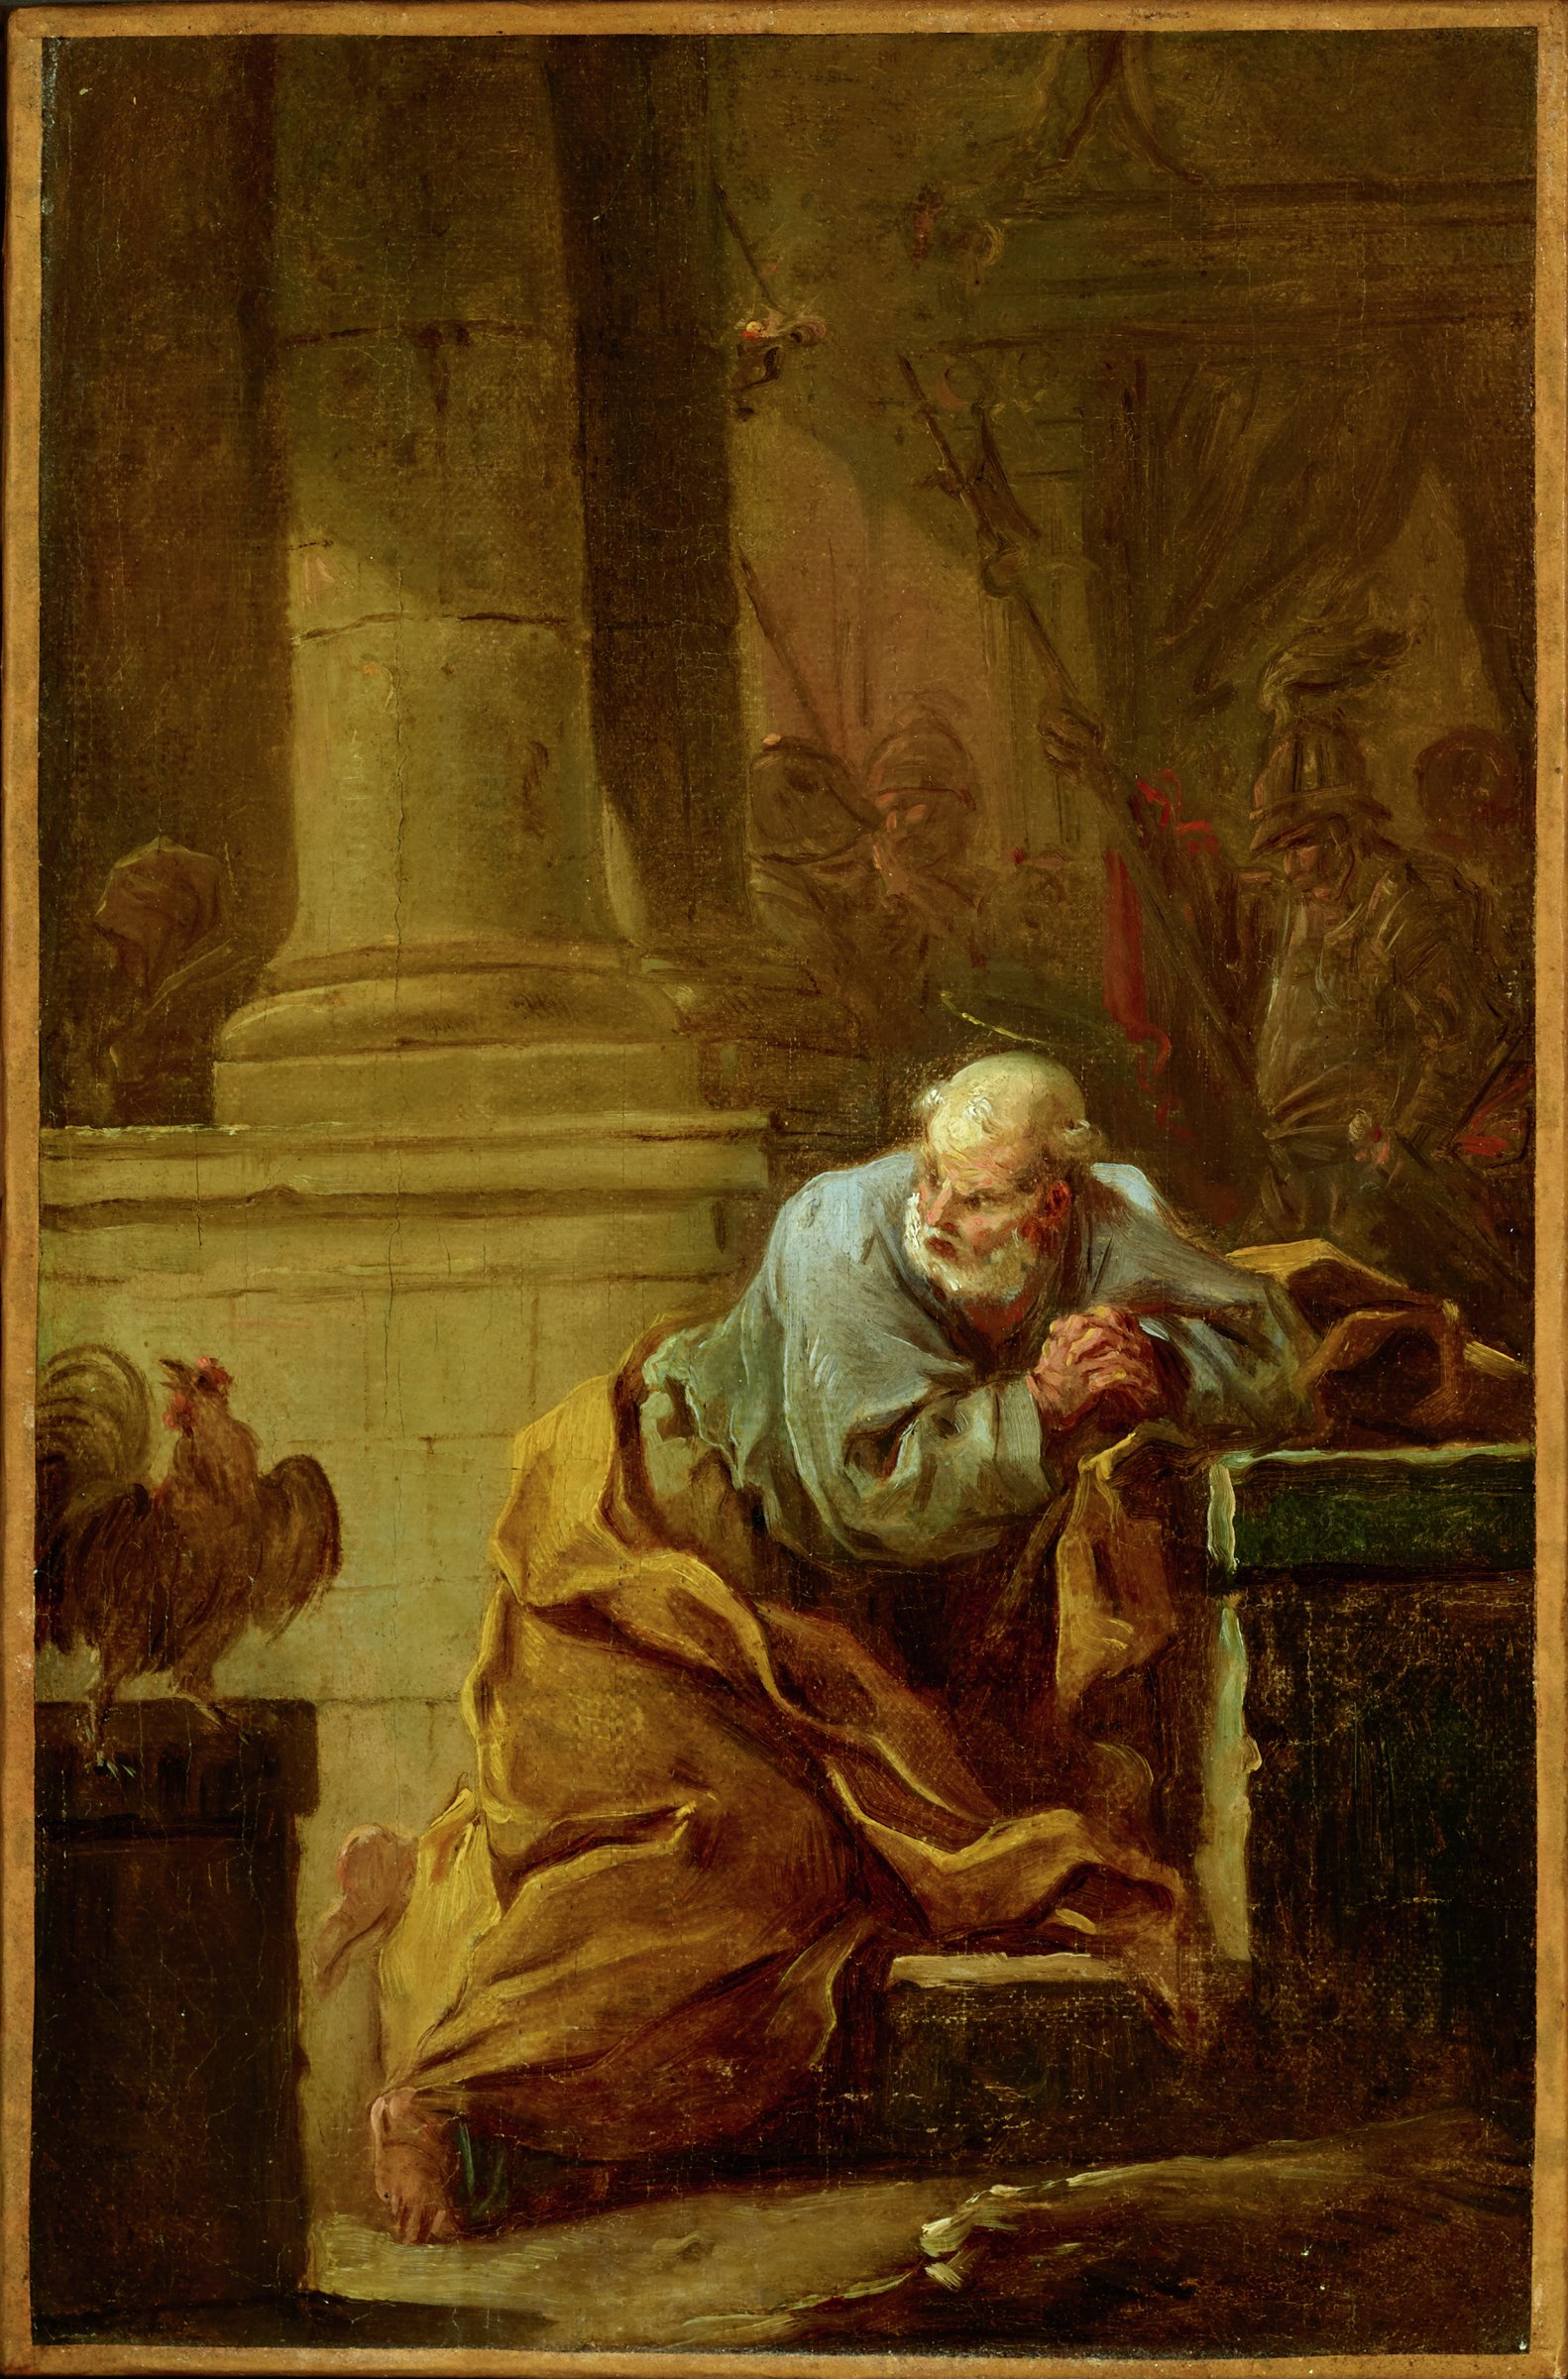 While kneeling in prayer, St. Peter turns at the sound of a cock crowing. In the background soldiers are relaxing in a columned structure.